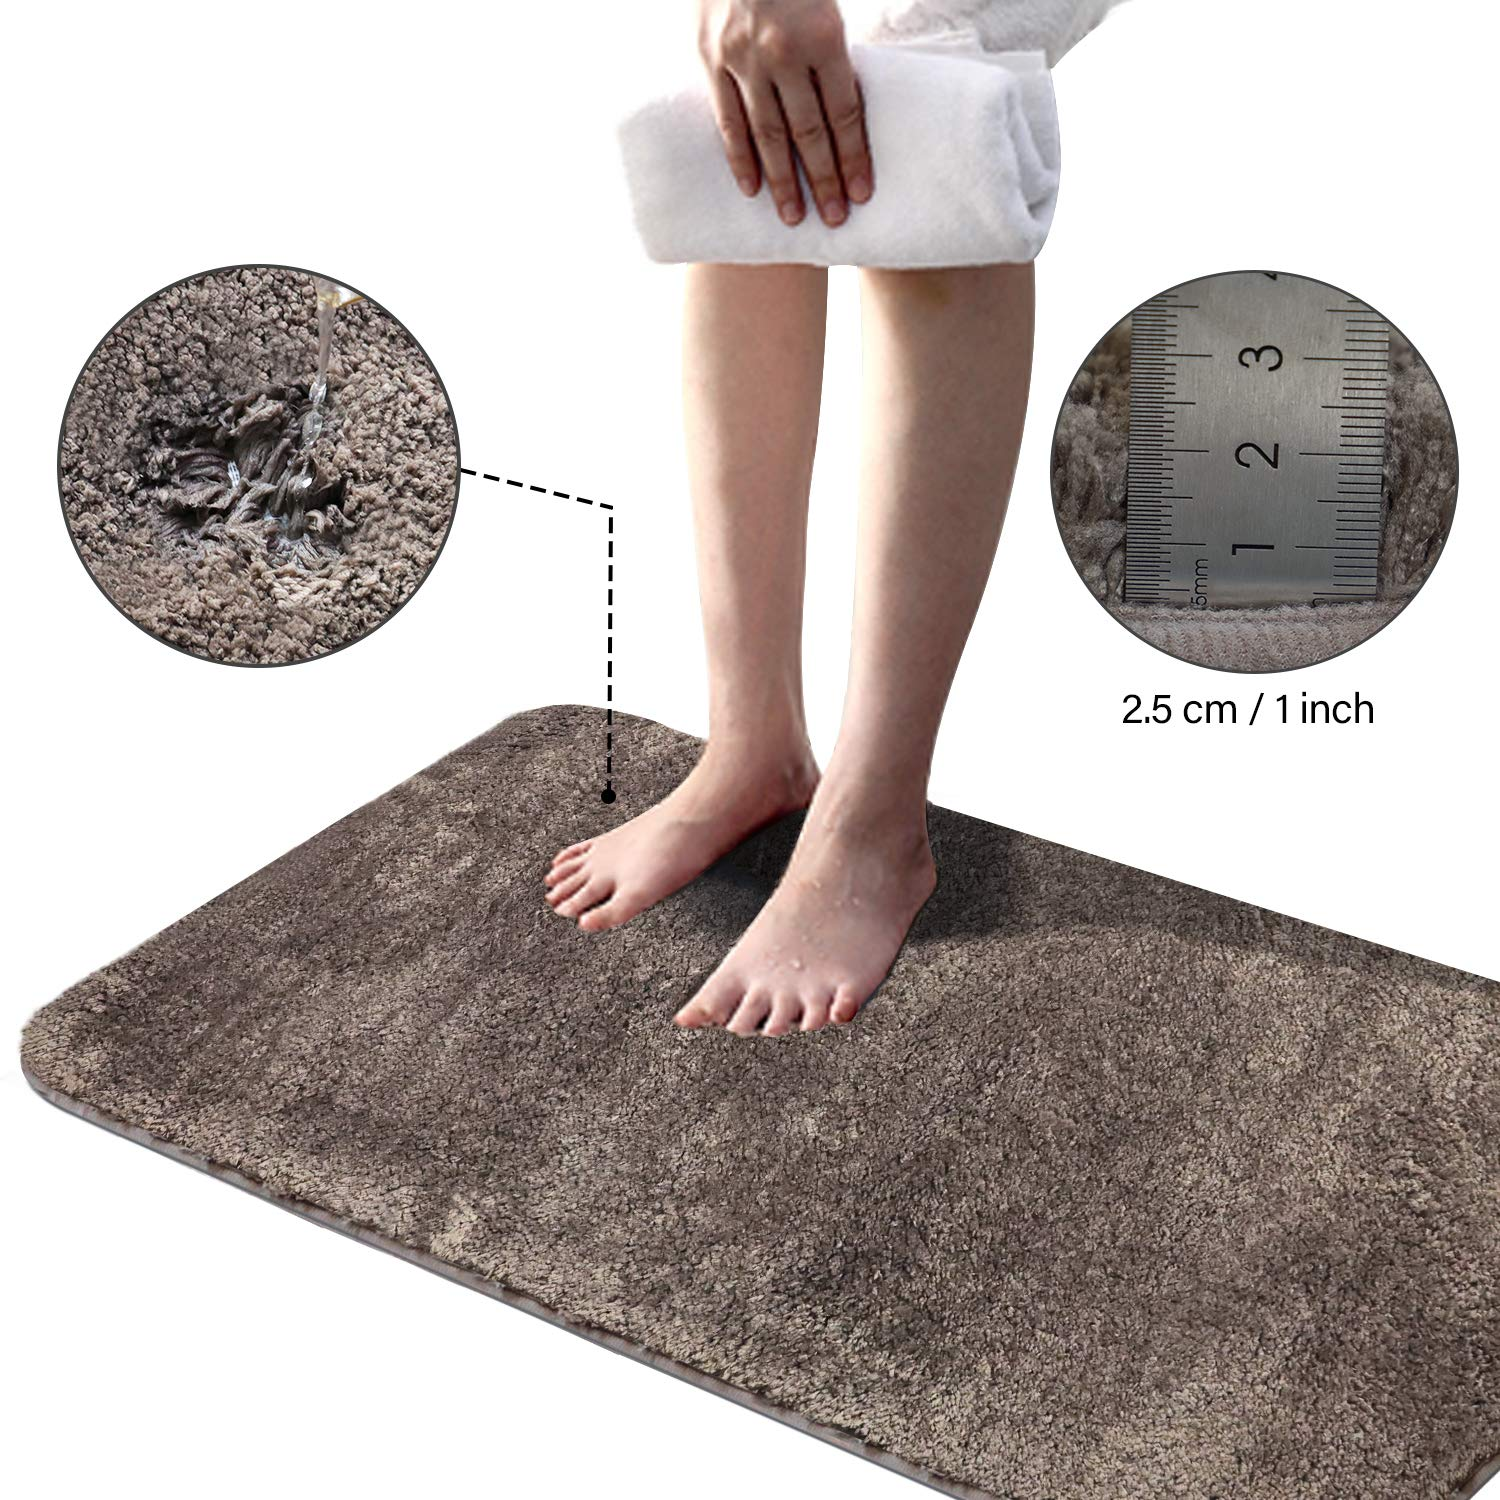 Soft Plush Bathroom Rug Bath Mat 20 X 32 Non Slip Microfiber Fluffy Shaggy Water Absorbent Bath Rug Carpet Machine Washable Rectangular Runner Area Rug Mats For Floor Kitchen Taupe Brown A1tradersinc